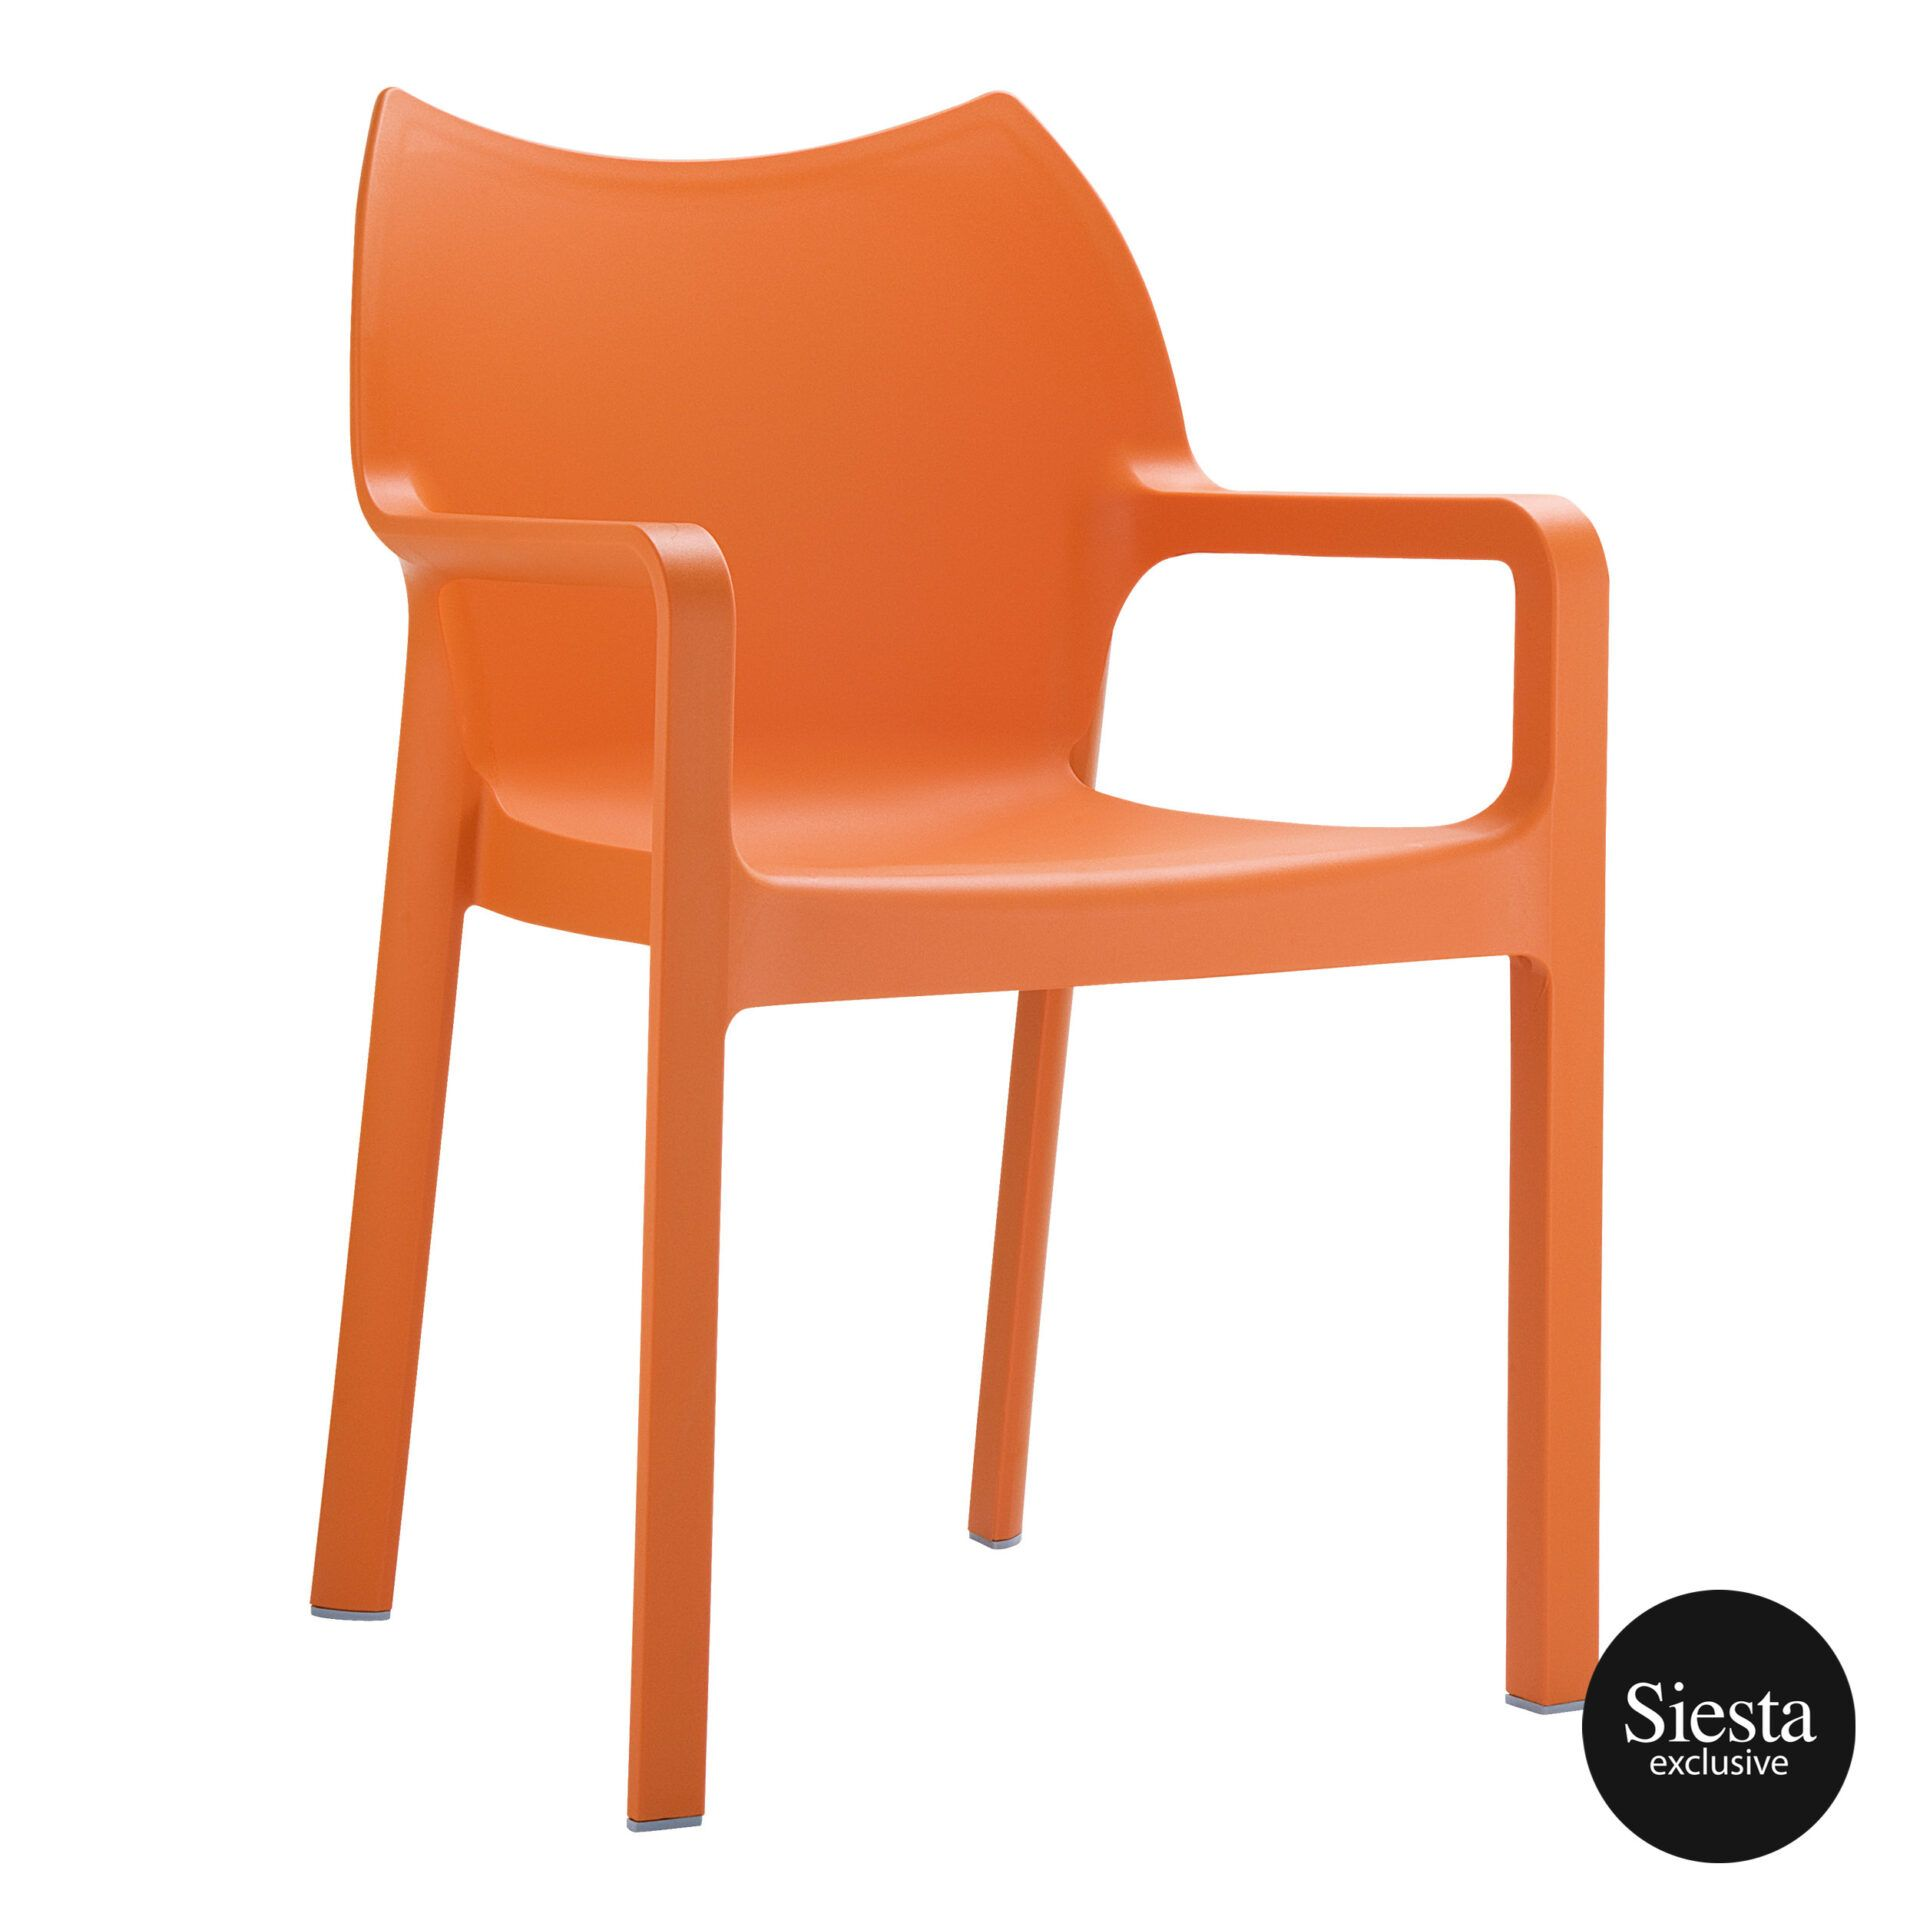 outdoor plastic seating diva chair orange front side 1